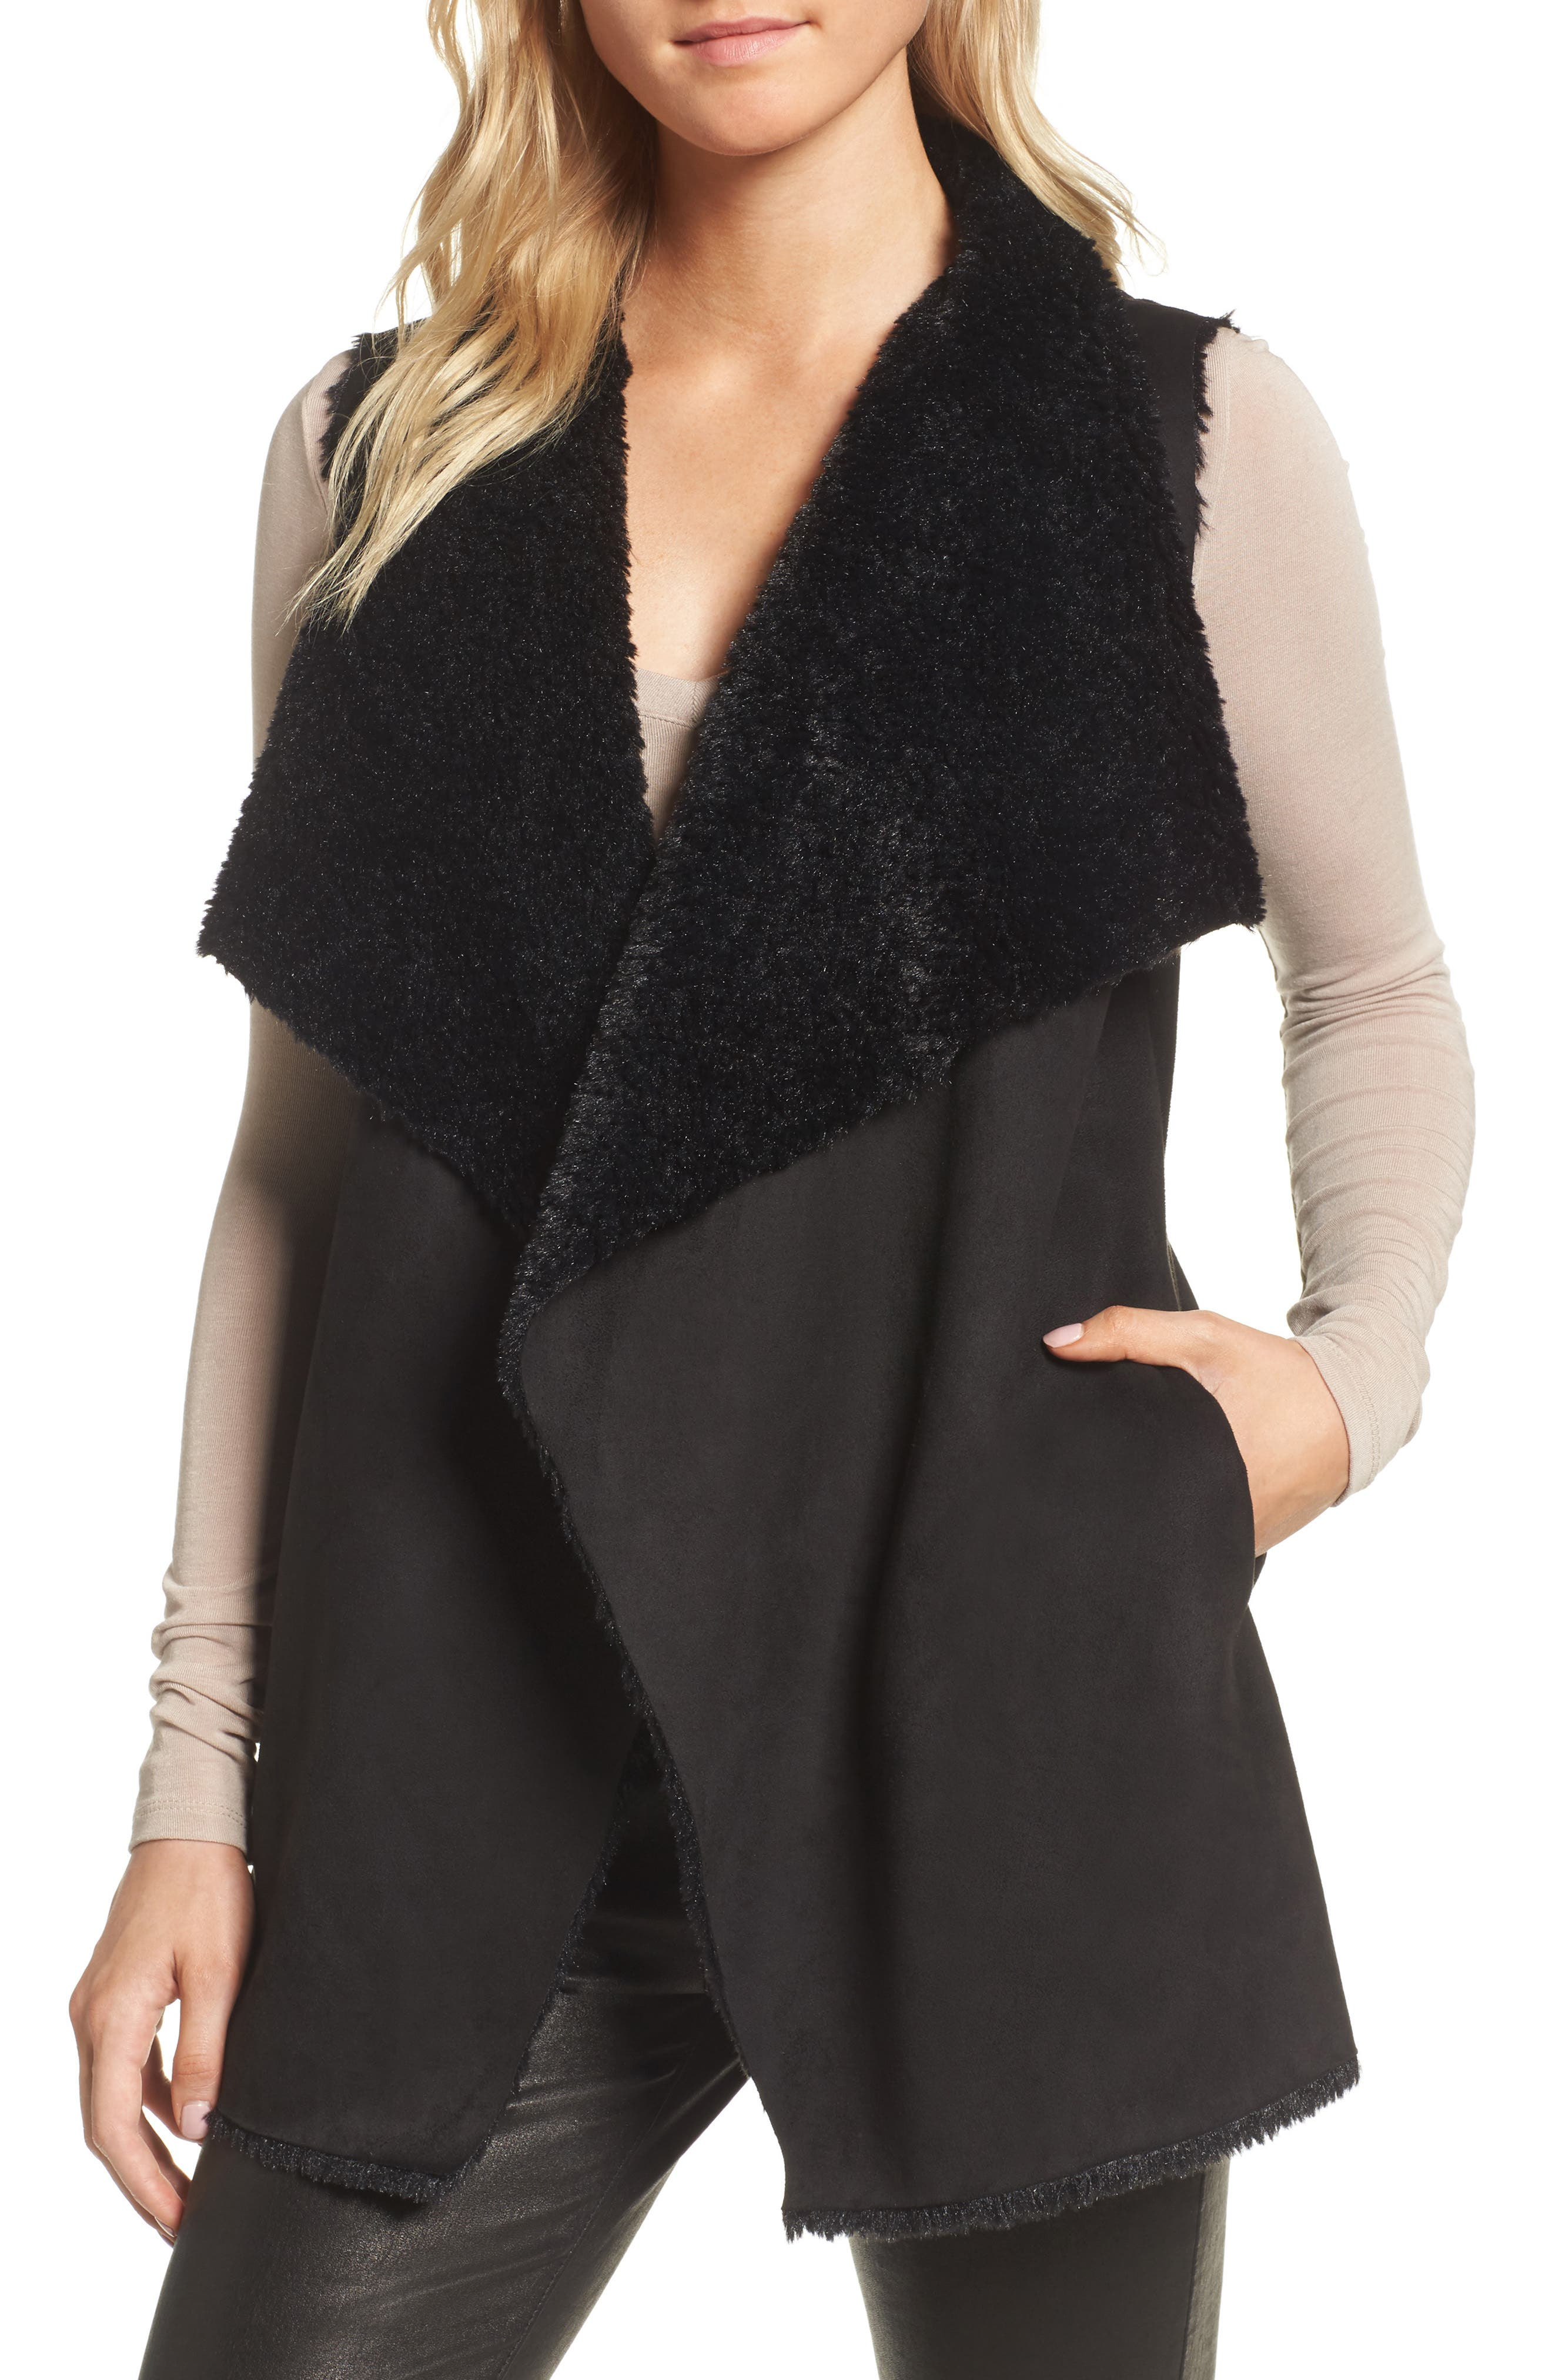 cupcakes and cashmere Avalonia Faux Shearling Vest